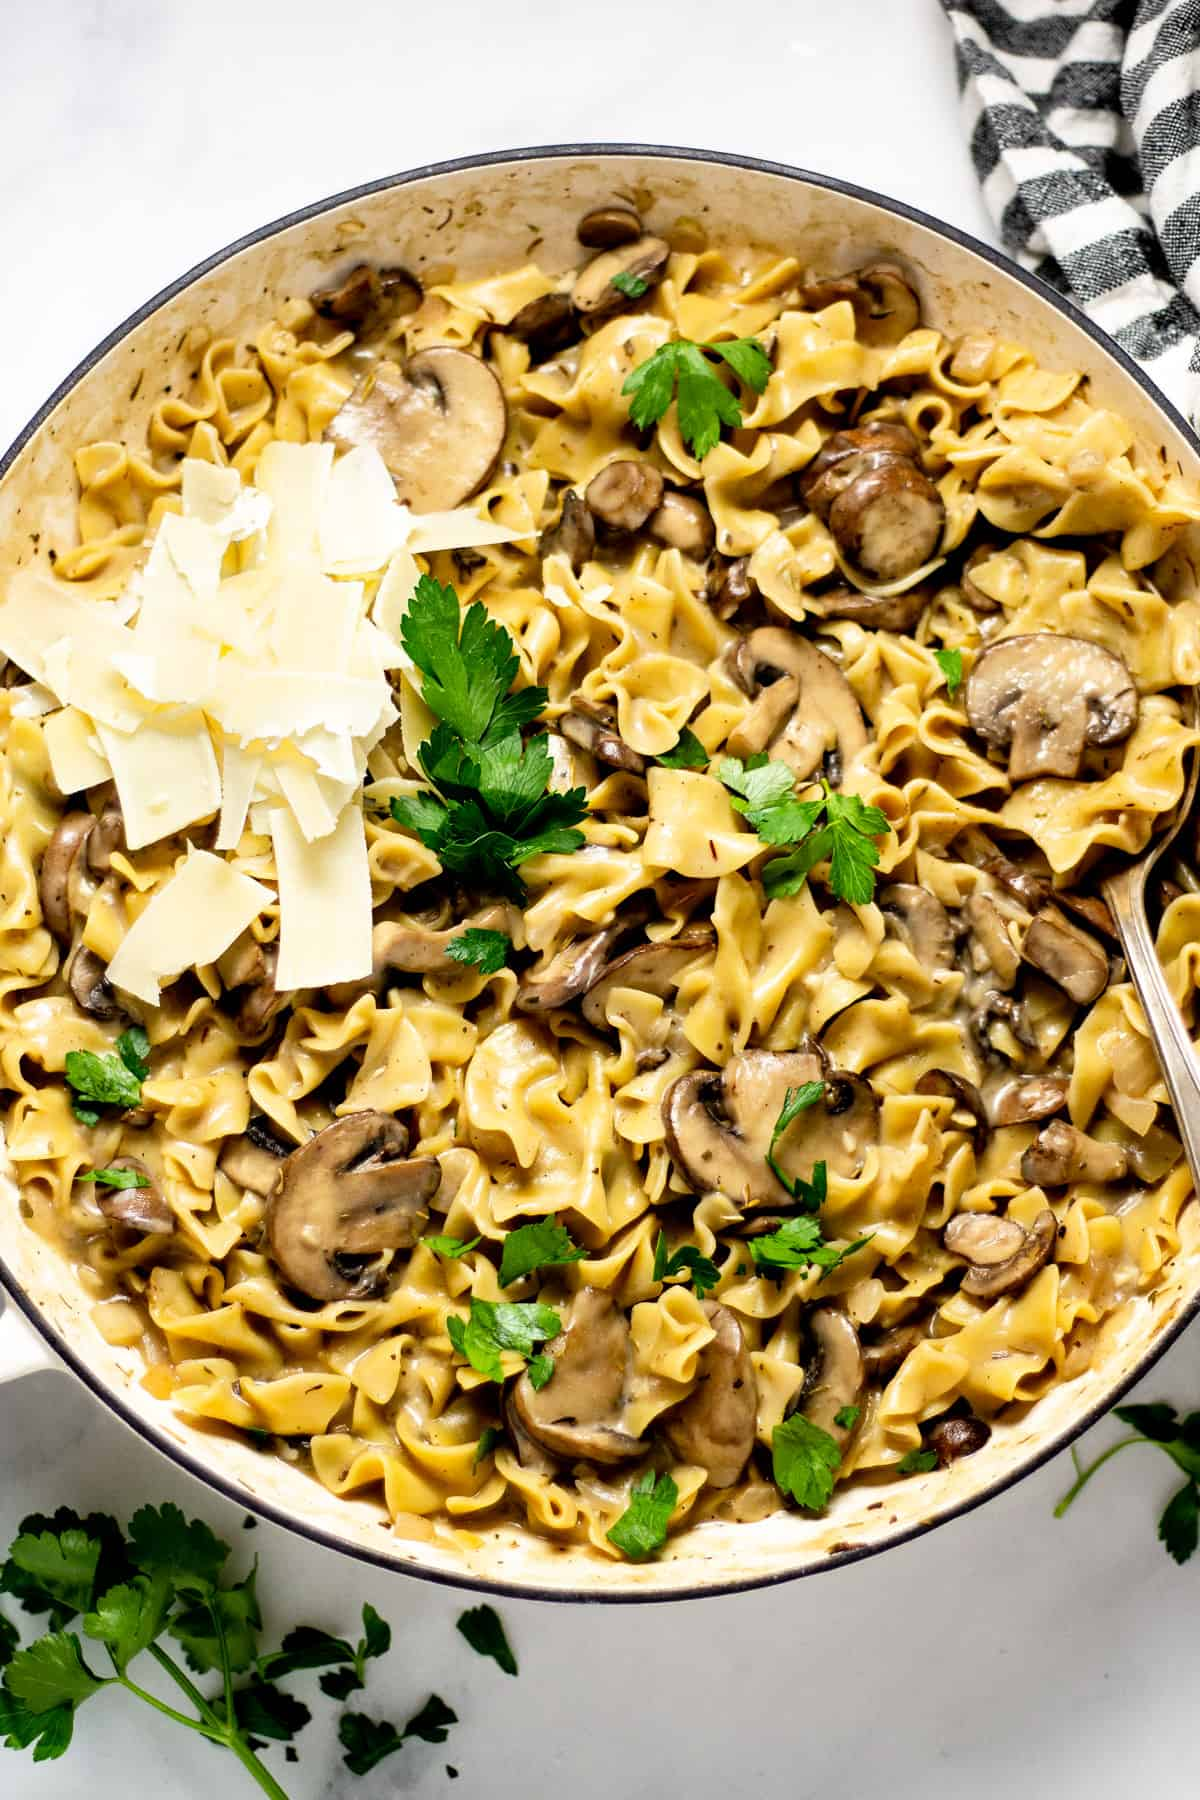 Overhead shot of a the finished dish one pot mushroom stroganoff garnished with fresh parsley and Parmesan